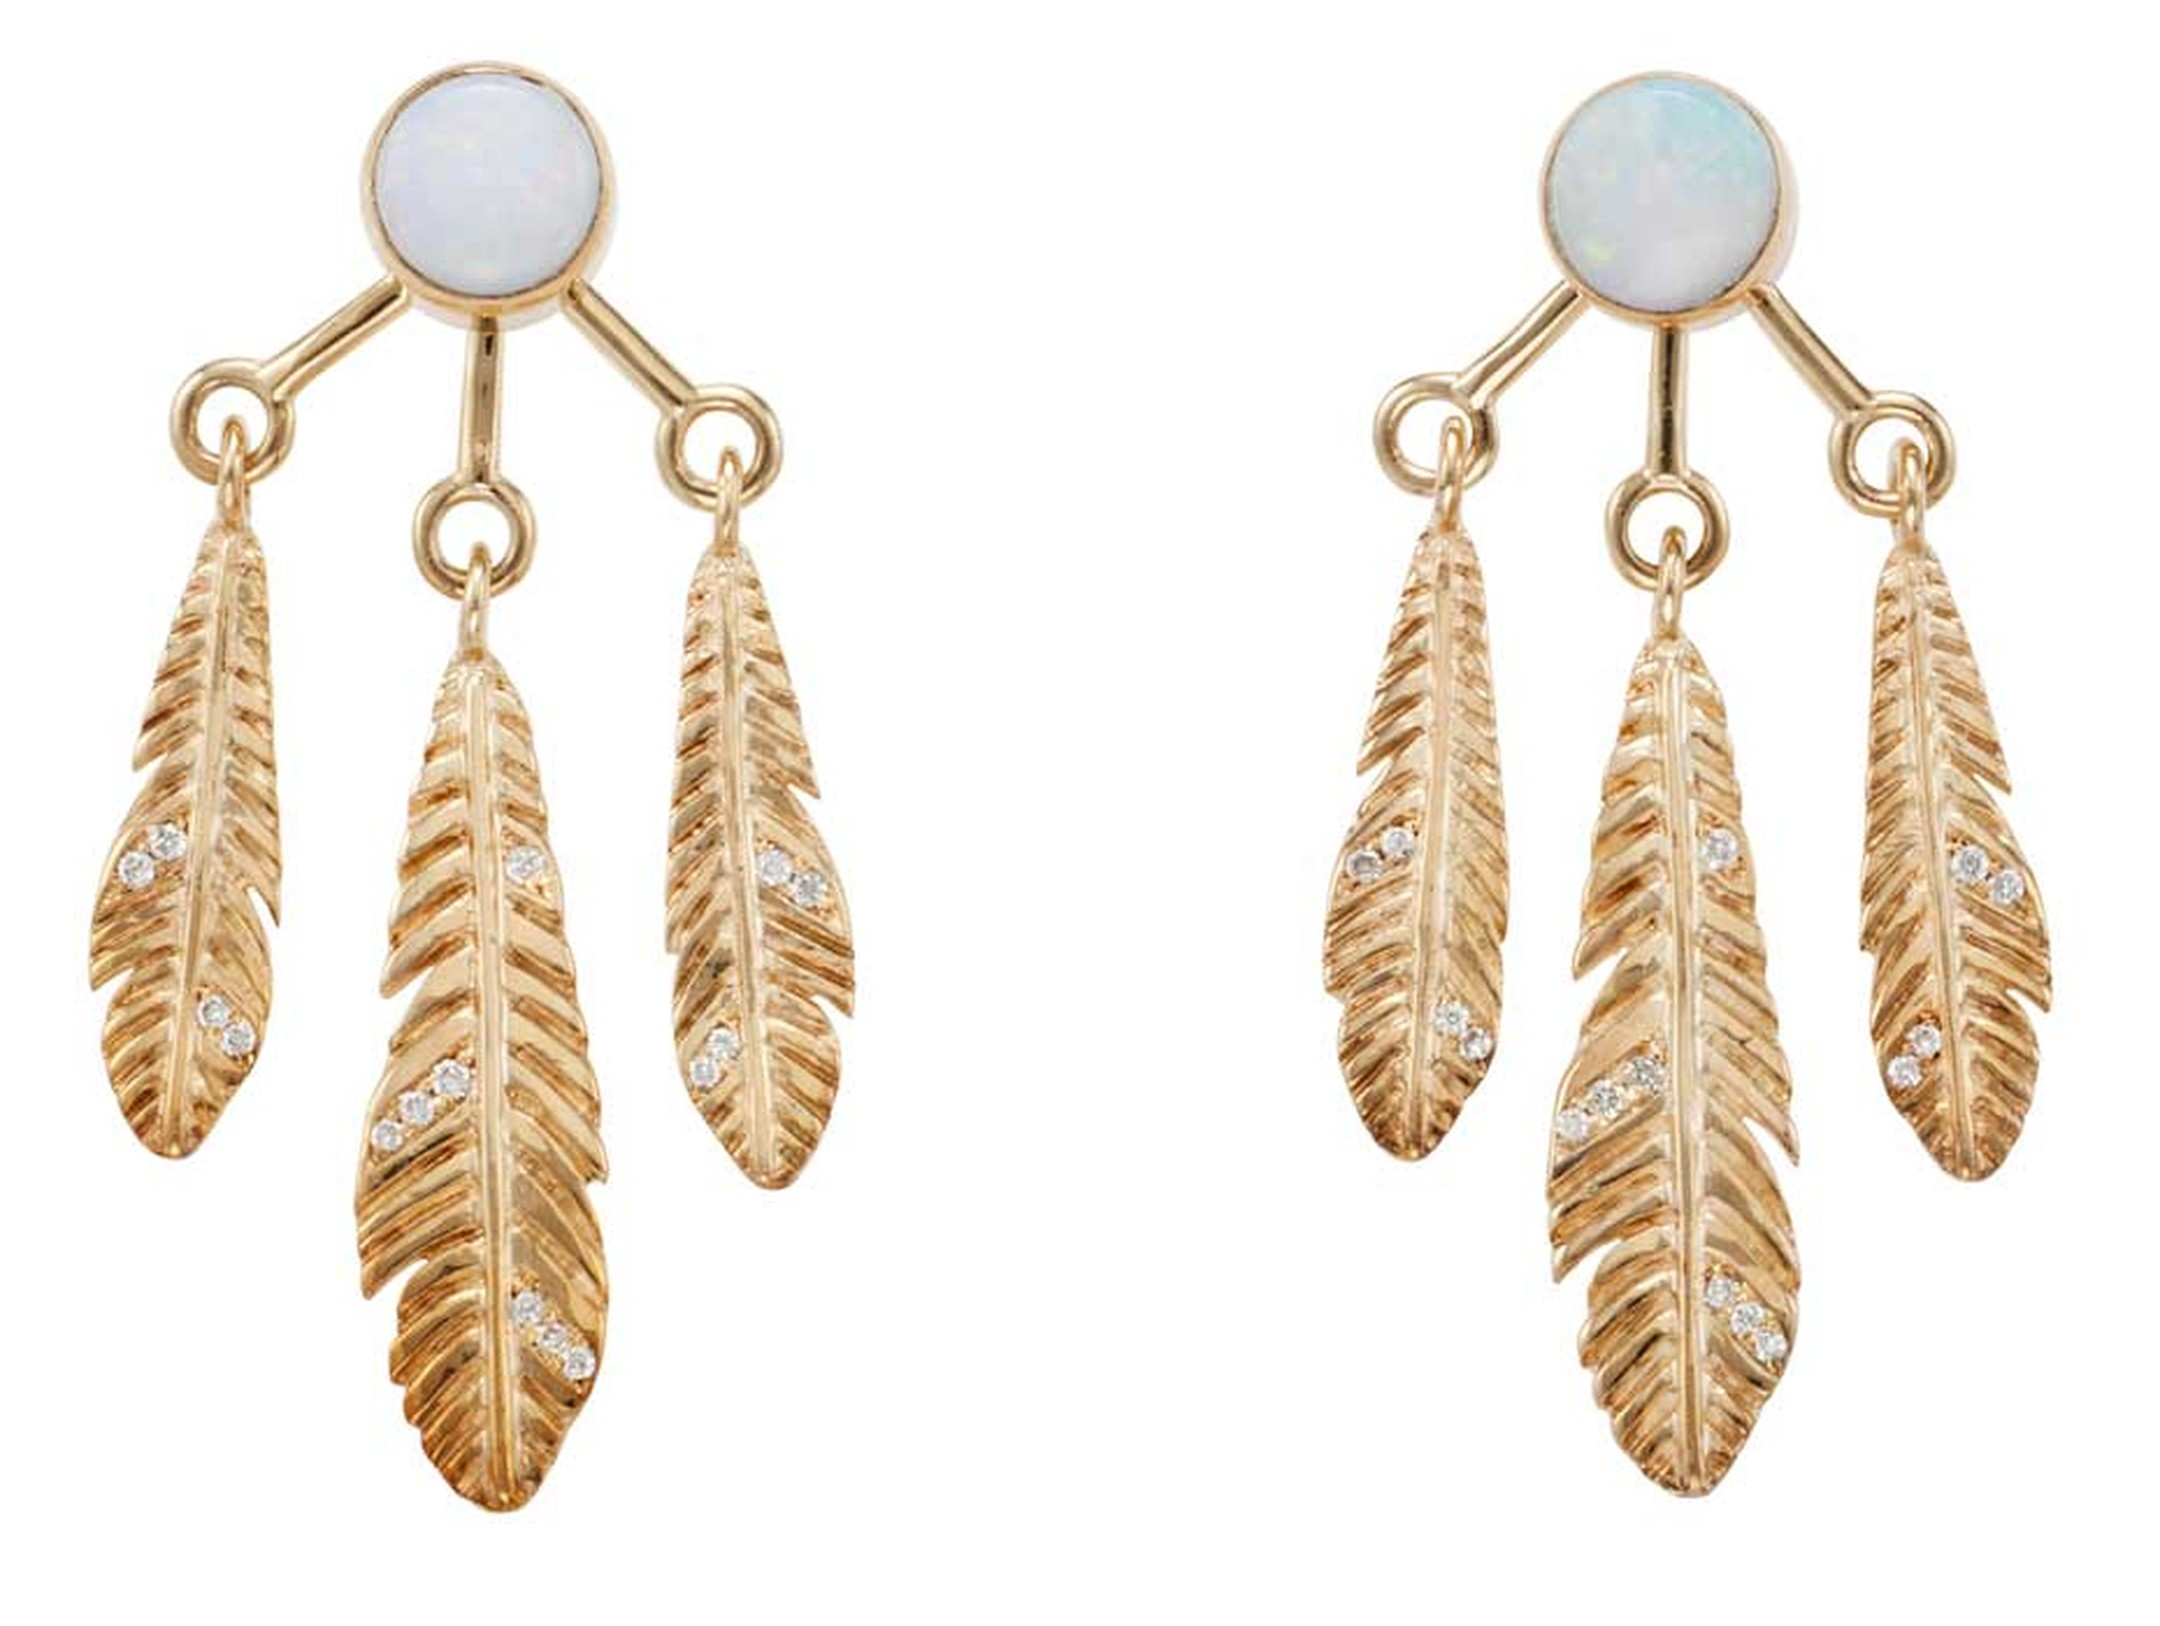 Pamela Love's Frida opal, diamond and gold earrings have each been designed as a circular opal stud, with an earring back jacket suspending three gold feathers set with circular-cut diamonds.